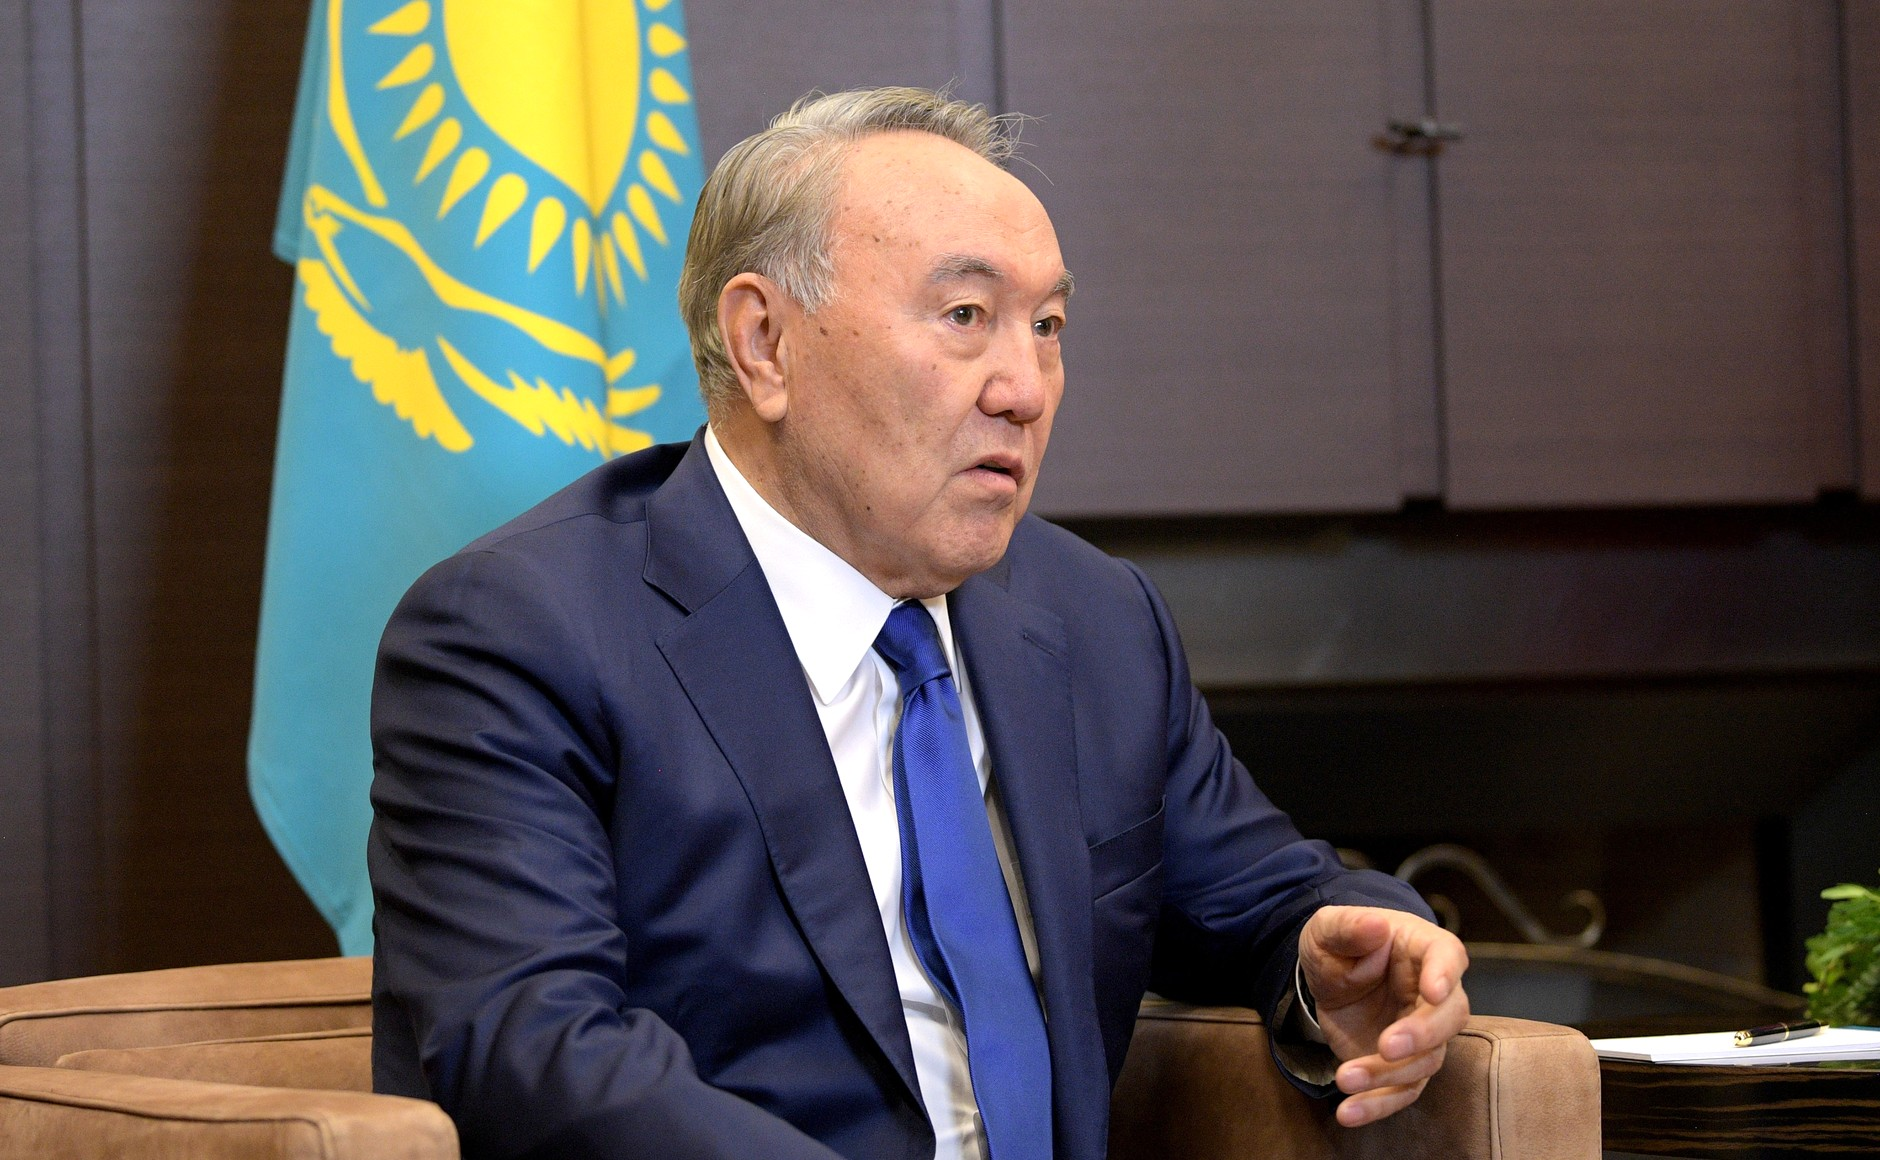 Nursultan Nazarbayev was Kazakhstan's first president. He held power for 29 years. (The Kremlin)